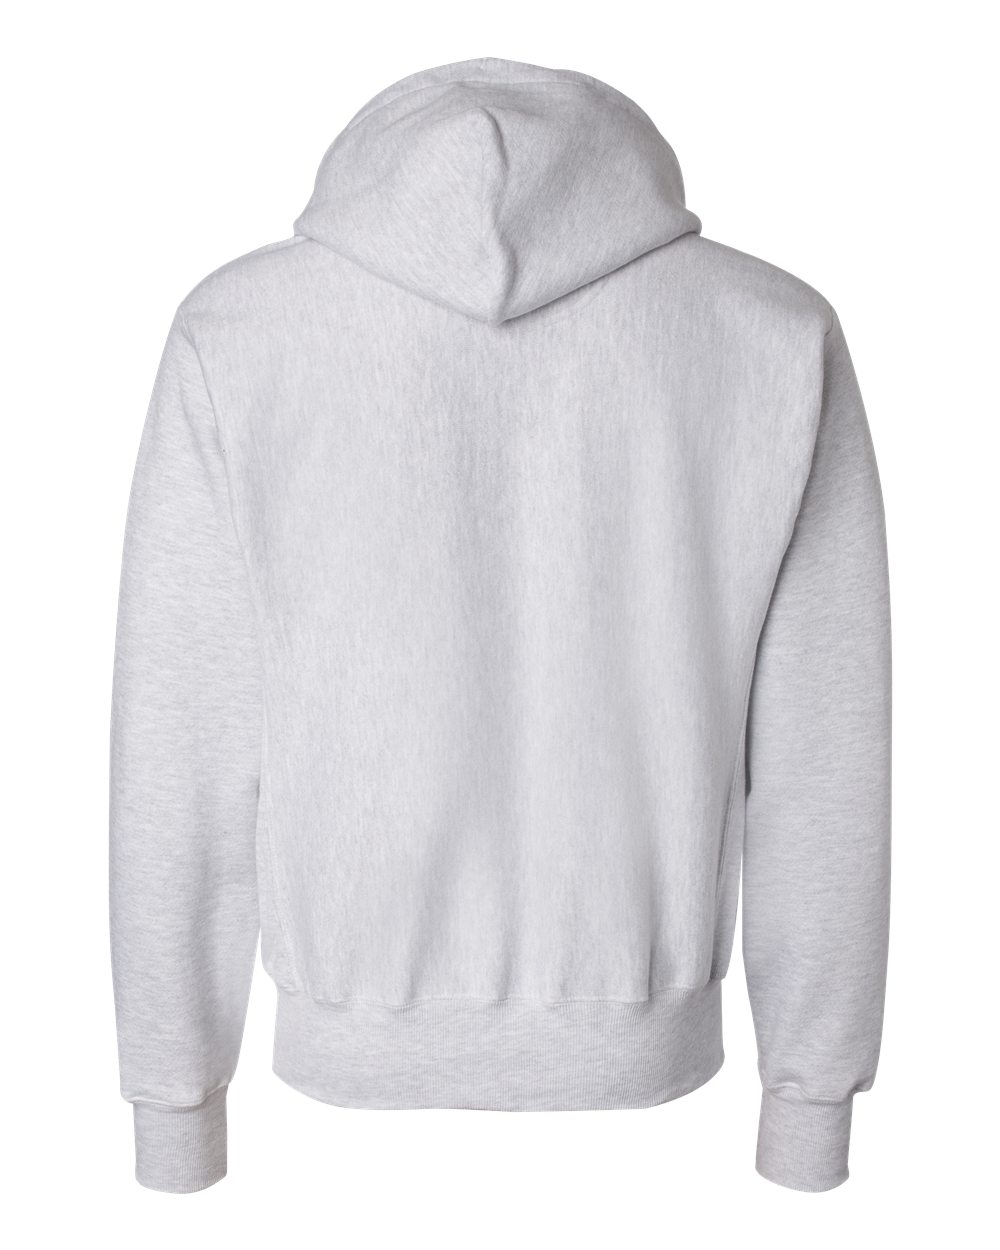 Champion-Mens-Reverse-Weave-Hooded-Pullover-Sweatshirt-S101-up-to-3XL thumbnail 46